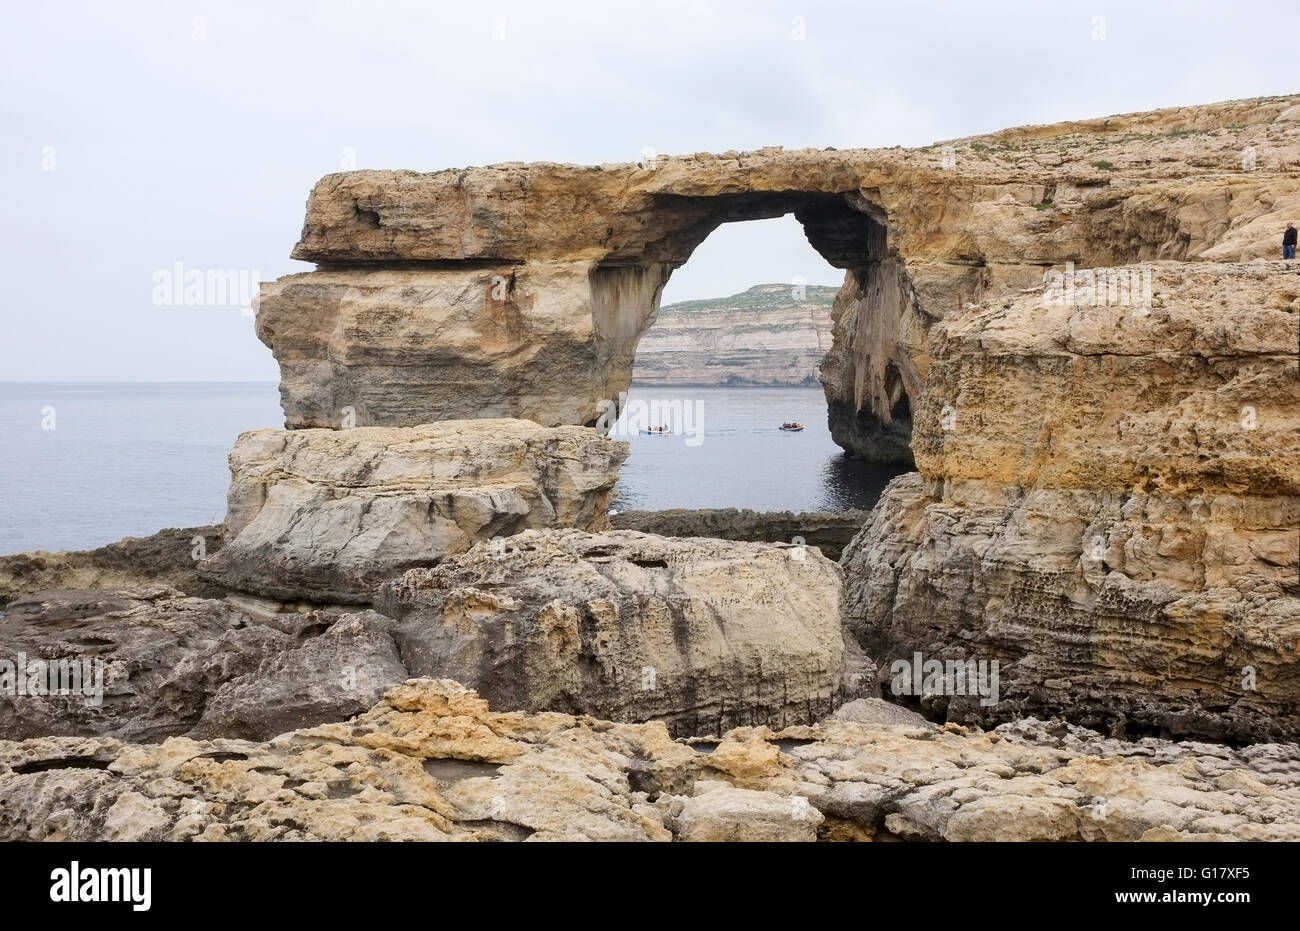 The Asure Window in Gozo, Malta -1 - Stock Image